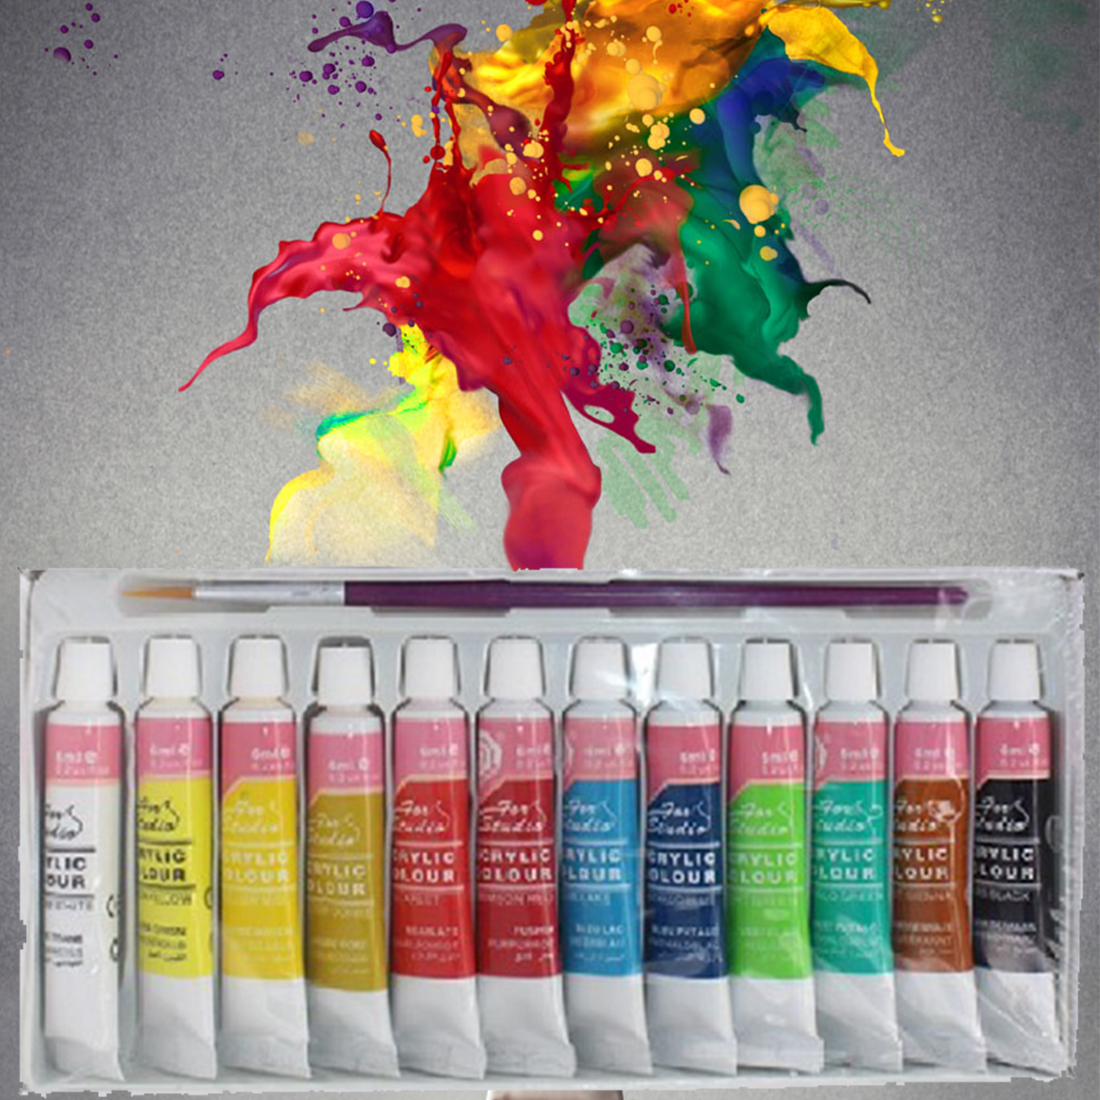 FangNymph 12 Colors Professional Acrylic Paints Set Hand Painted Wall Painting Textile Paint Brightly Colored Art Supplies 6 ml 12 colors professional acrylic paints set hand painted wall painting textile paint brightly colored art supplies free brush